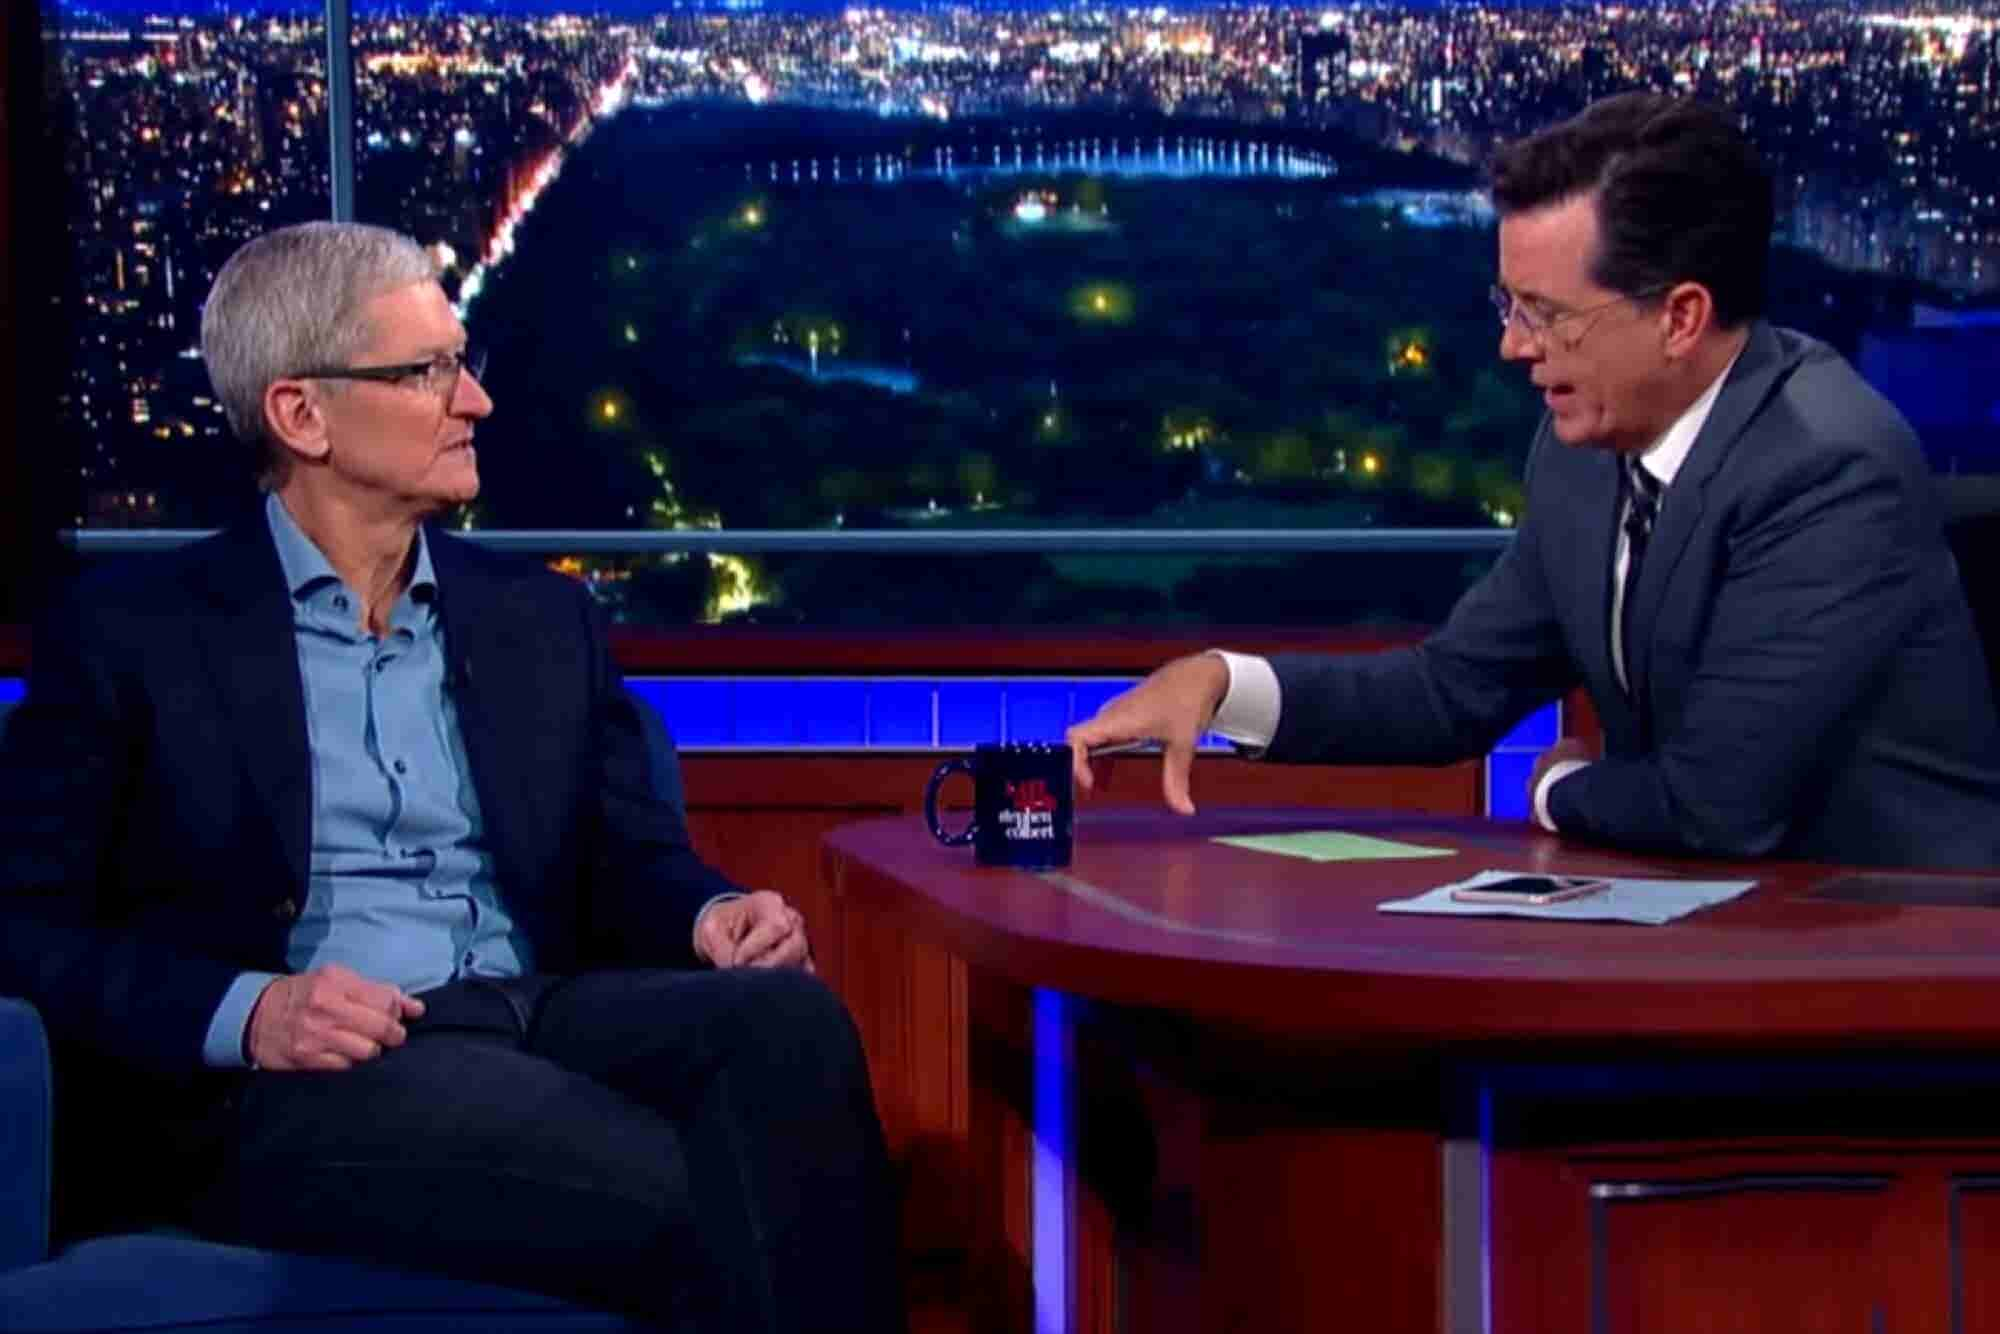 Tim Cook Tells Stephen Colbert He Had a 'Tremendous Responsibility' to Come Out as Gay (VIDEO)